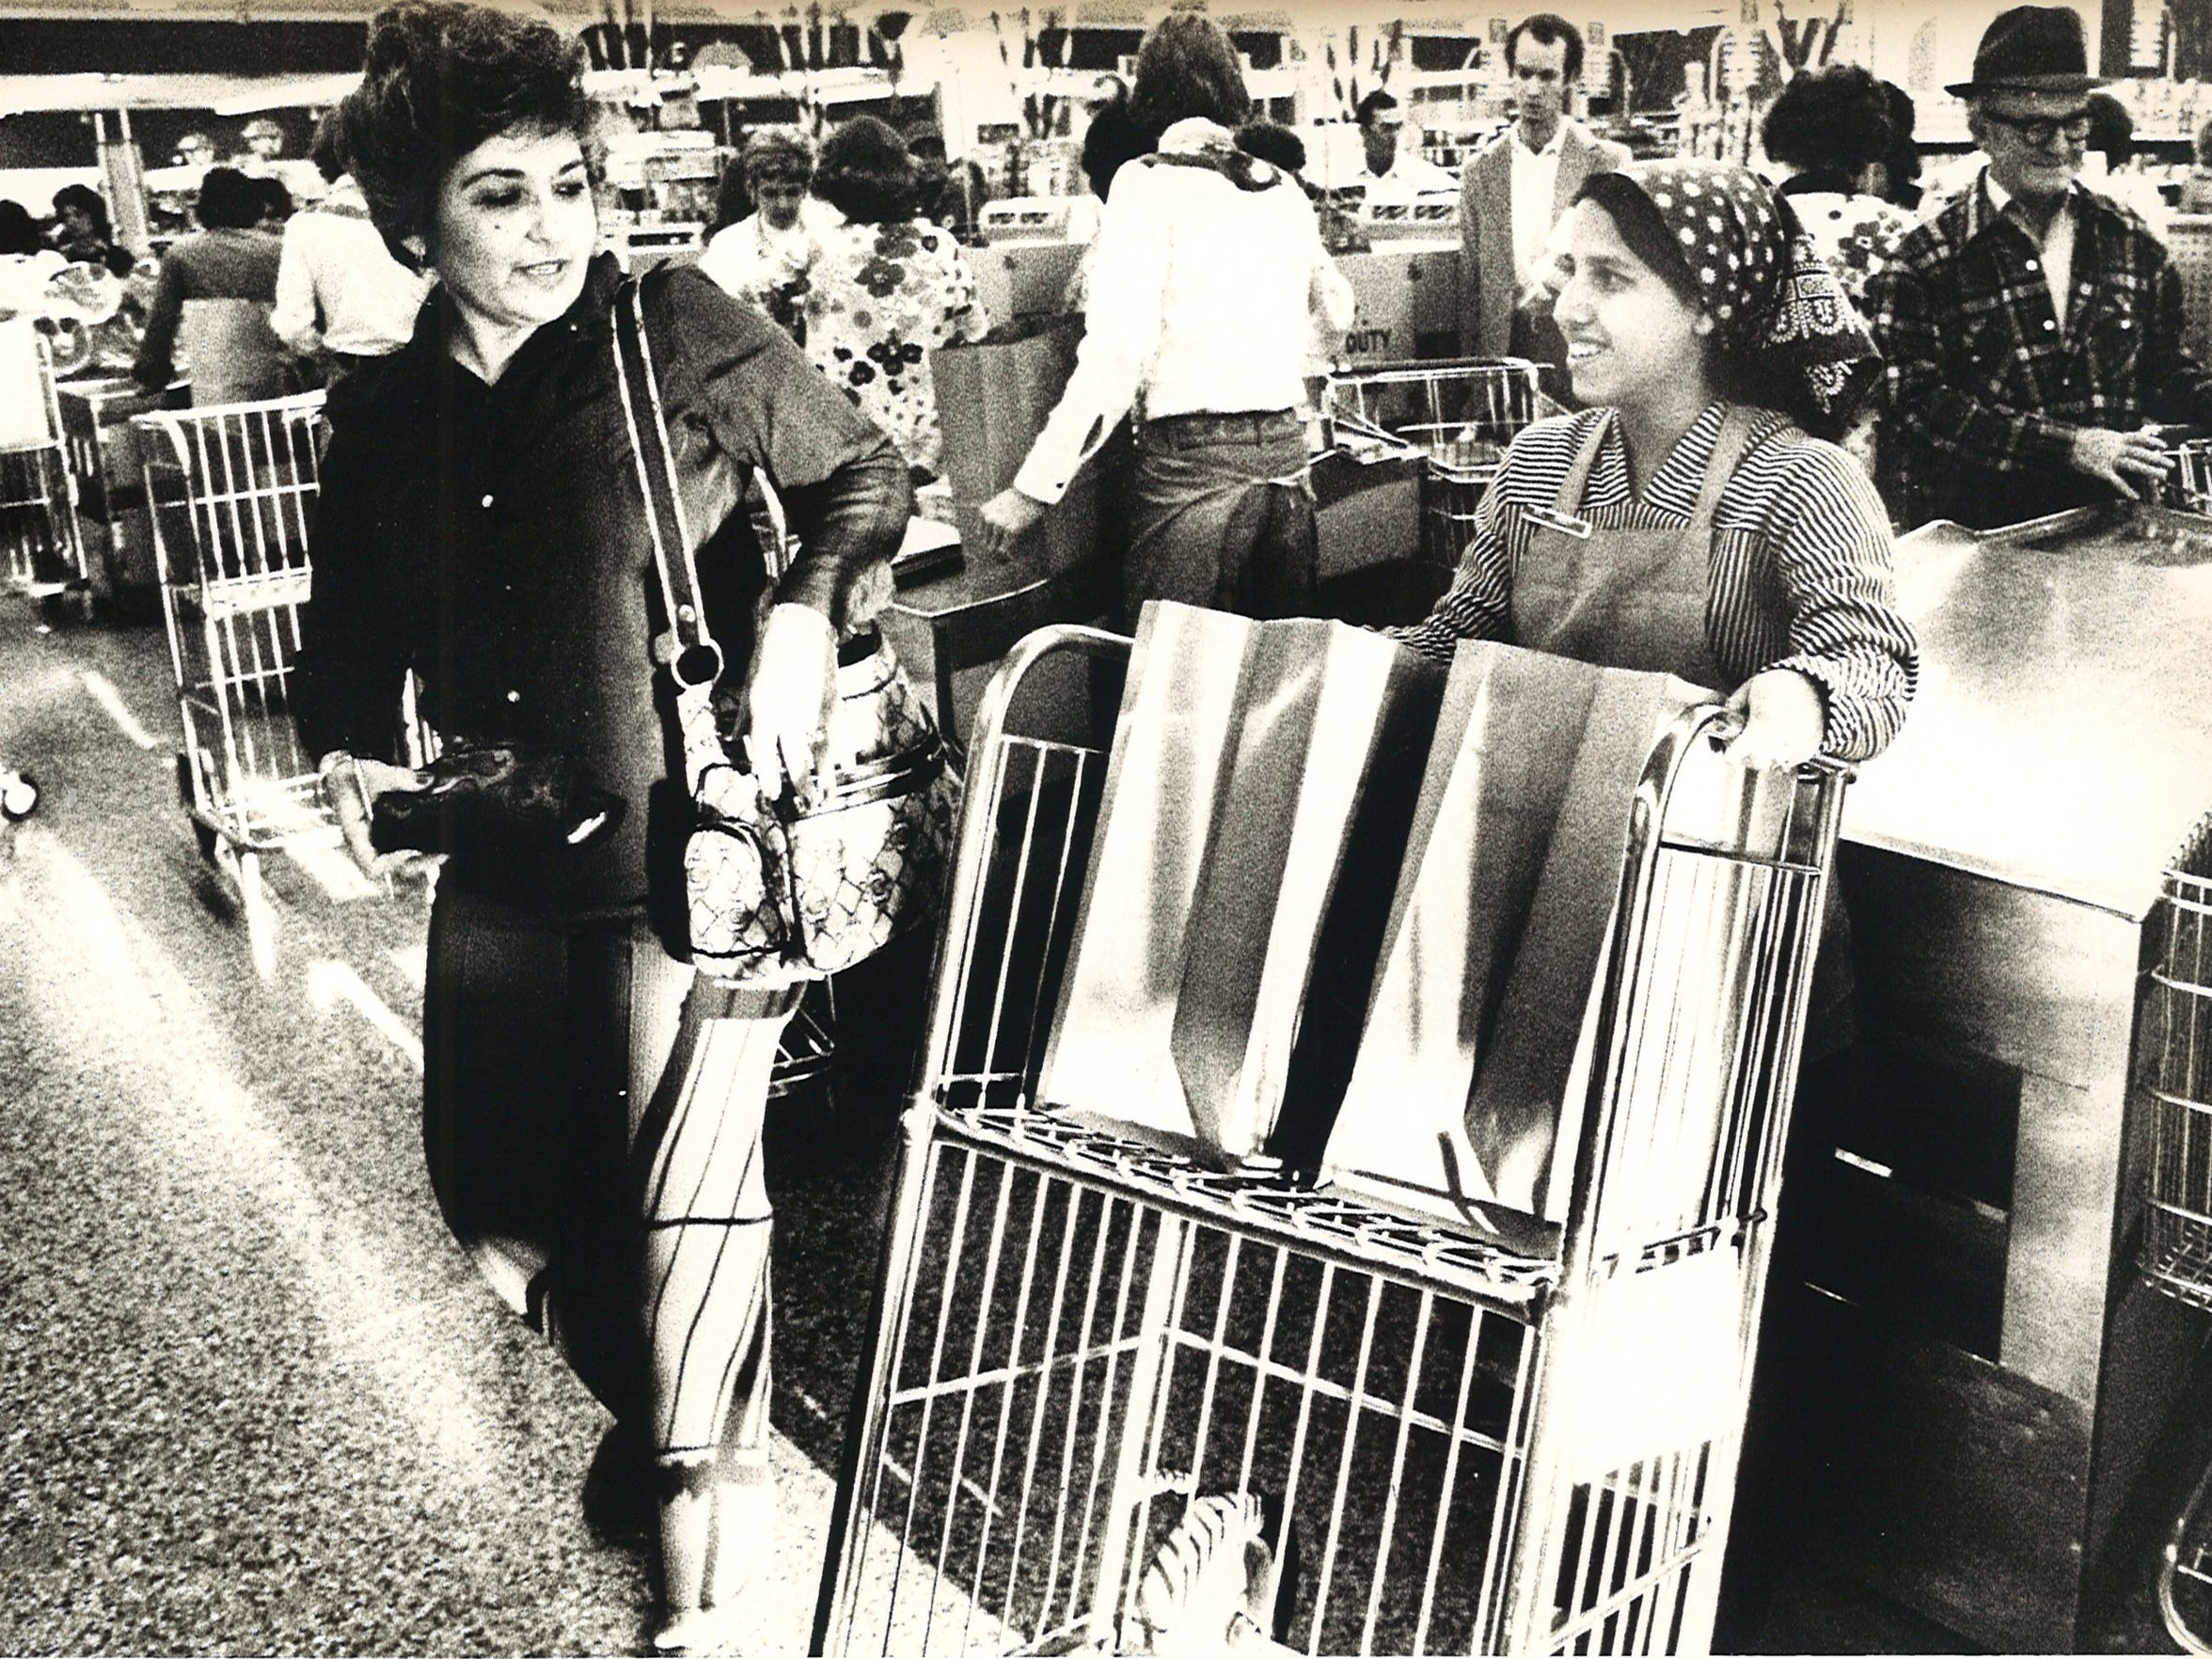 19-year-old Norma Lozano was one of only two female grocery baggers at Corpus Christi's Handy Andy in Hamlin Shopping Center at Staples and Weber Road in November 1975.